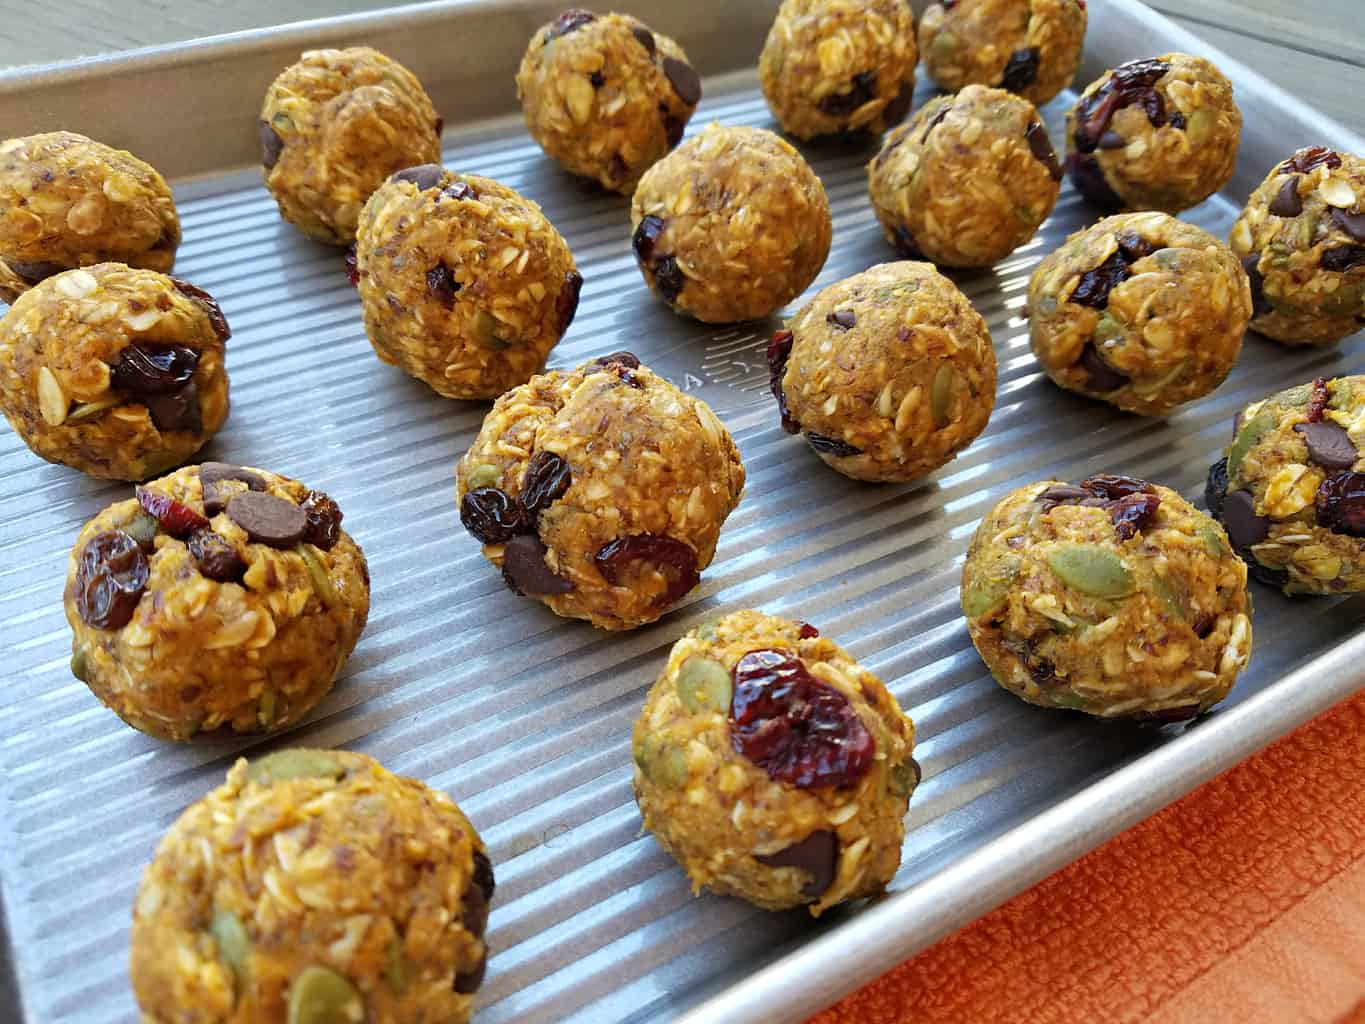 A baking sheet full of No Bake Peanut Butter Pumpkin Balls